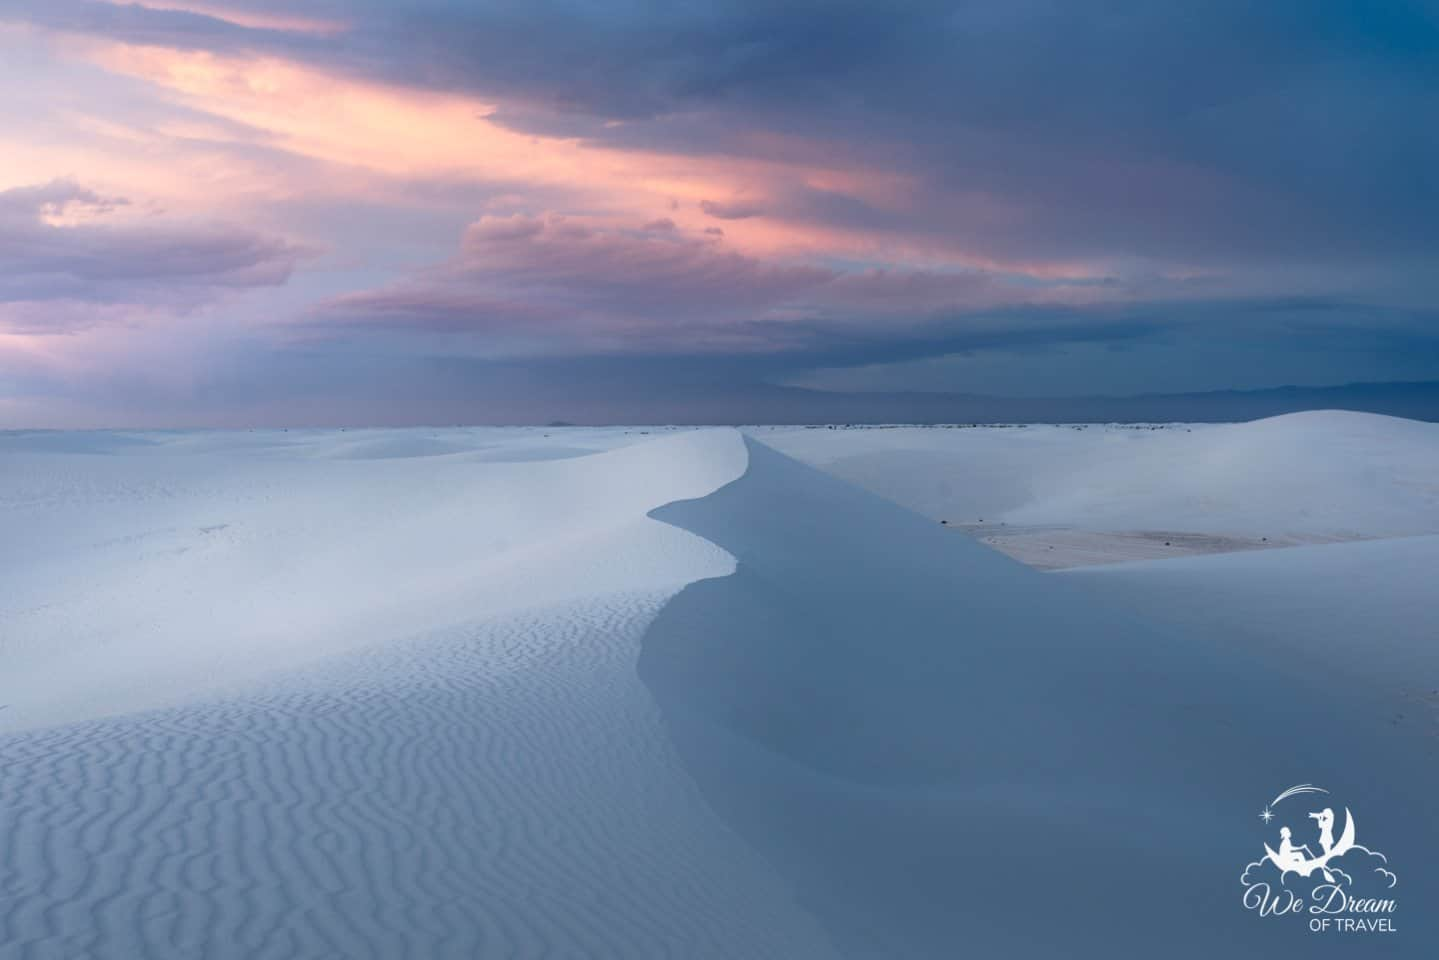 Get lost (not literally!) in the dunes of Alkali Flats at twilight for a magical White Sands experience.